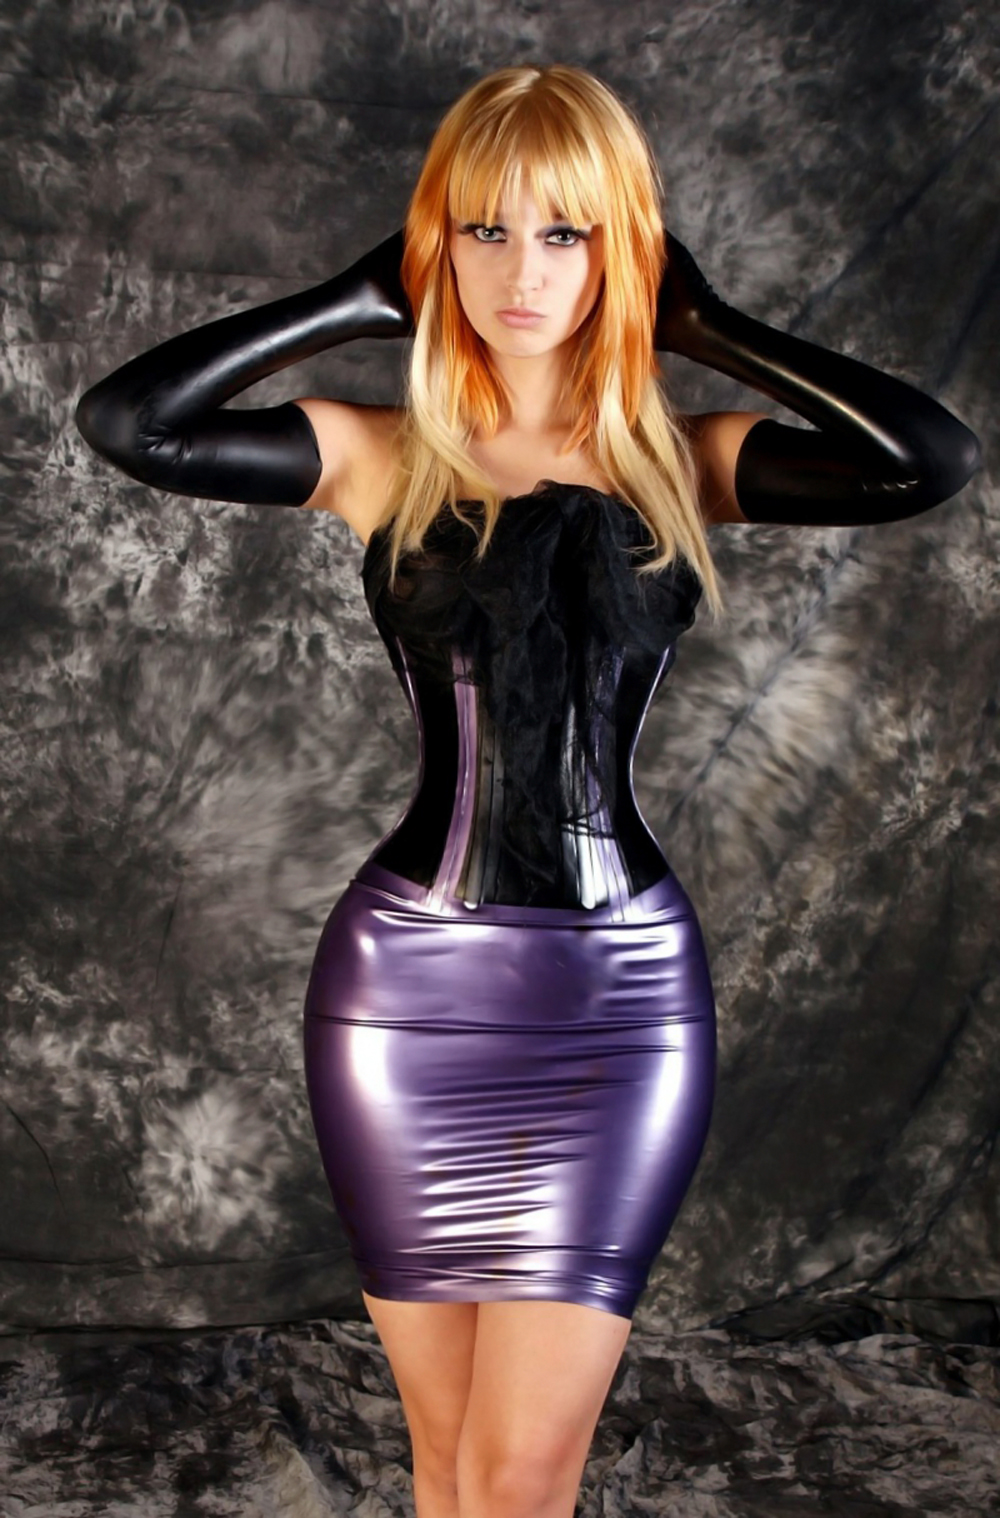 Morphed Babes: > I JUST LOVE LATEX